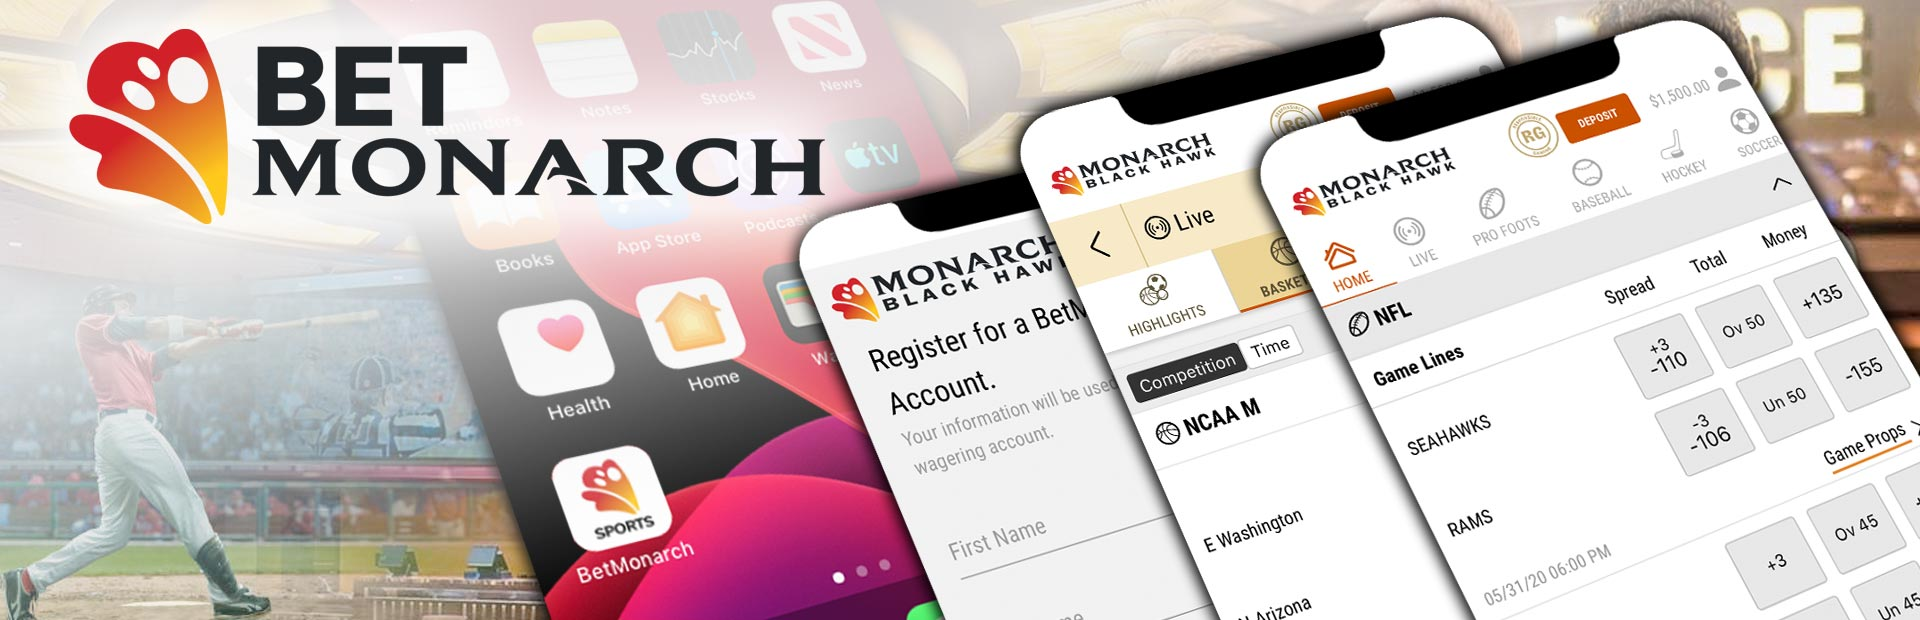 BetMonarch Sports App Screens